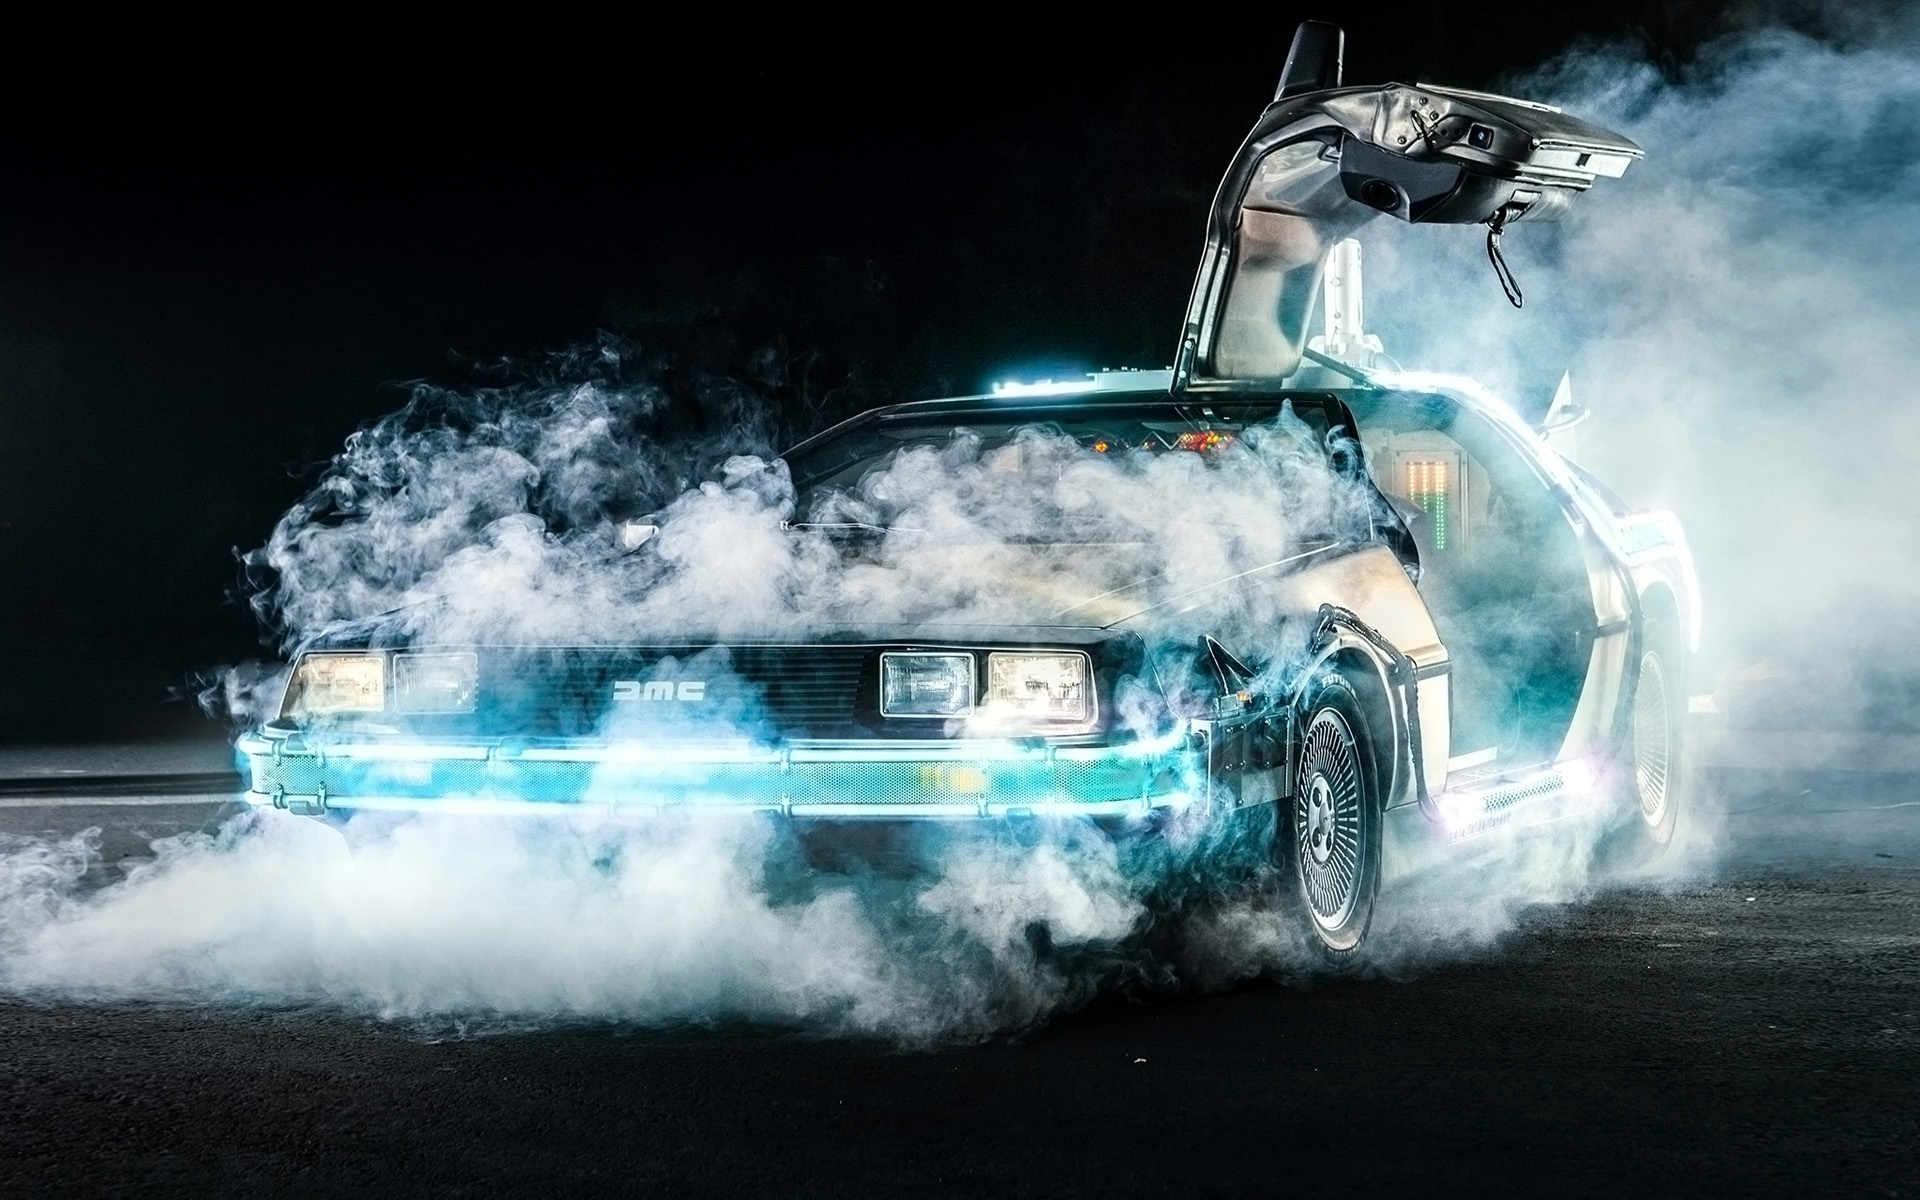 Back To The Future Wallpapers Wallpapersafari HD Wallpapers Download Free Images Wallpaper [1000image.com]